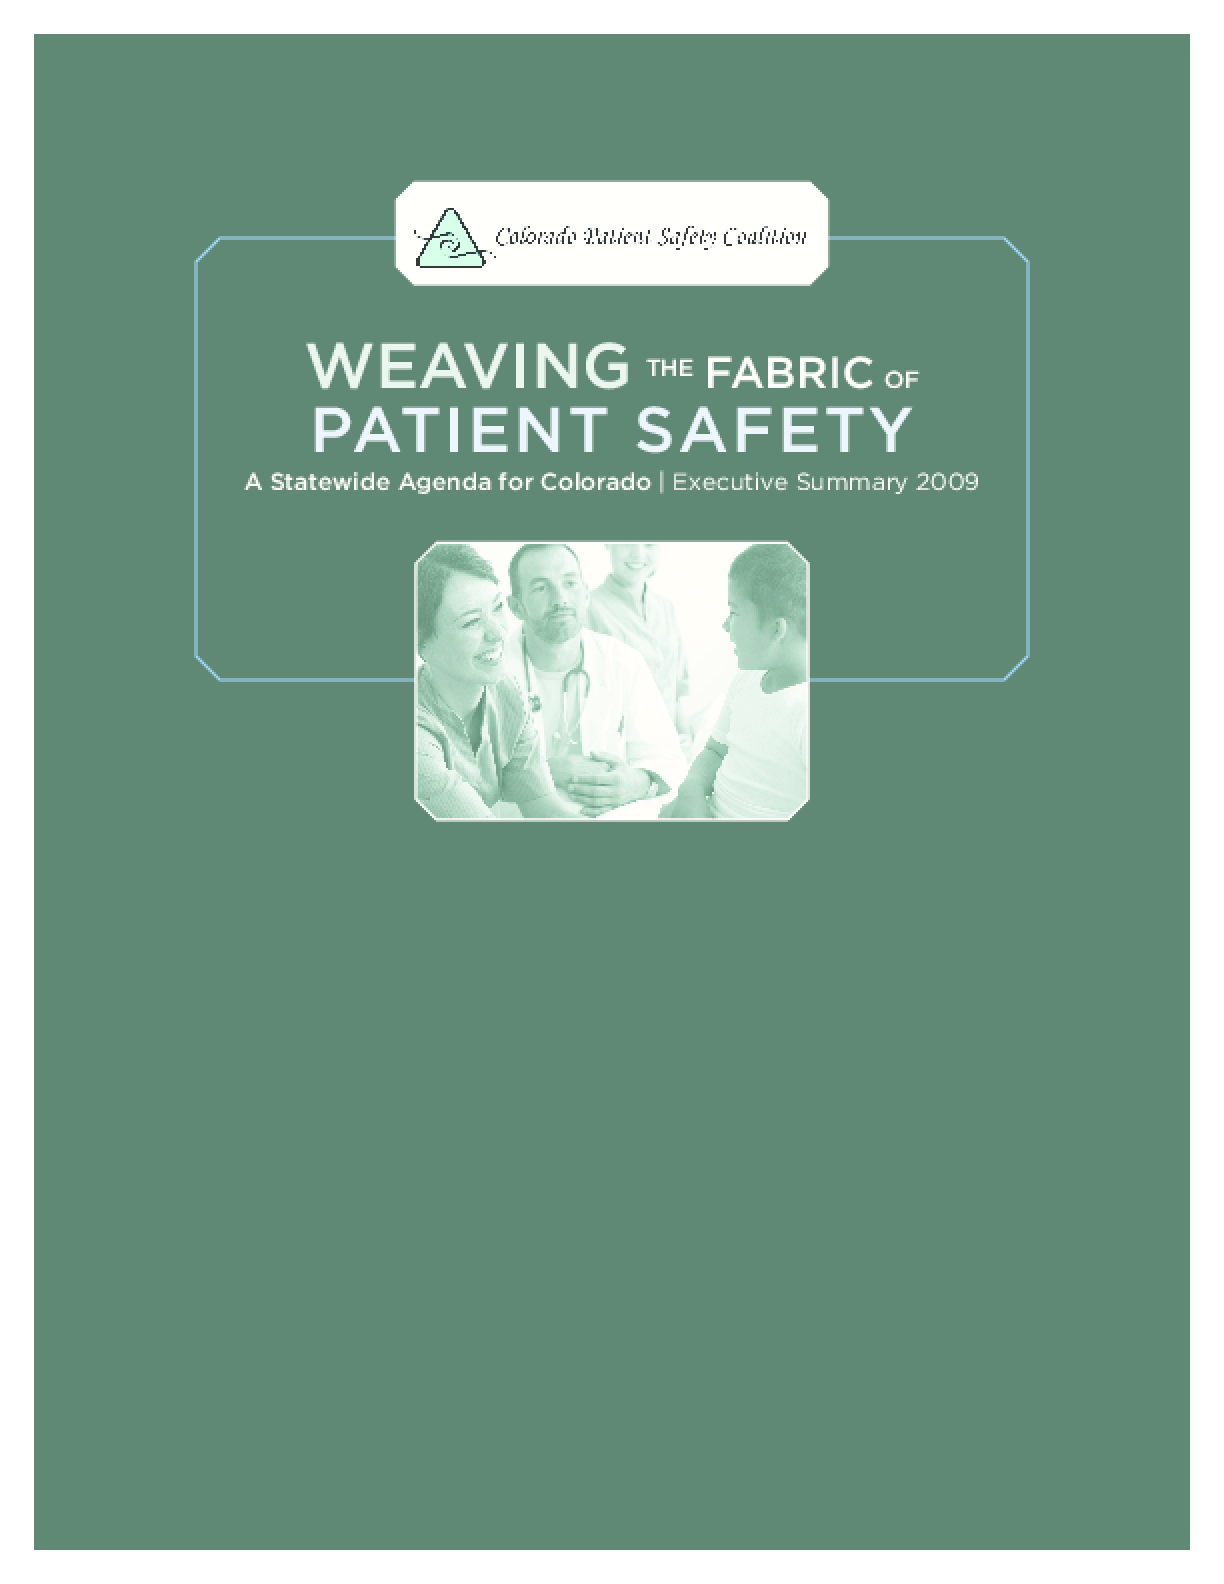 Weaving the Fabric of Patient Safety